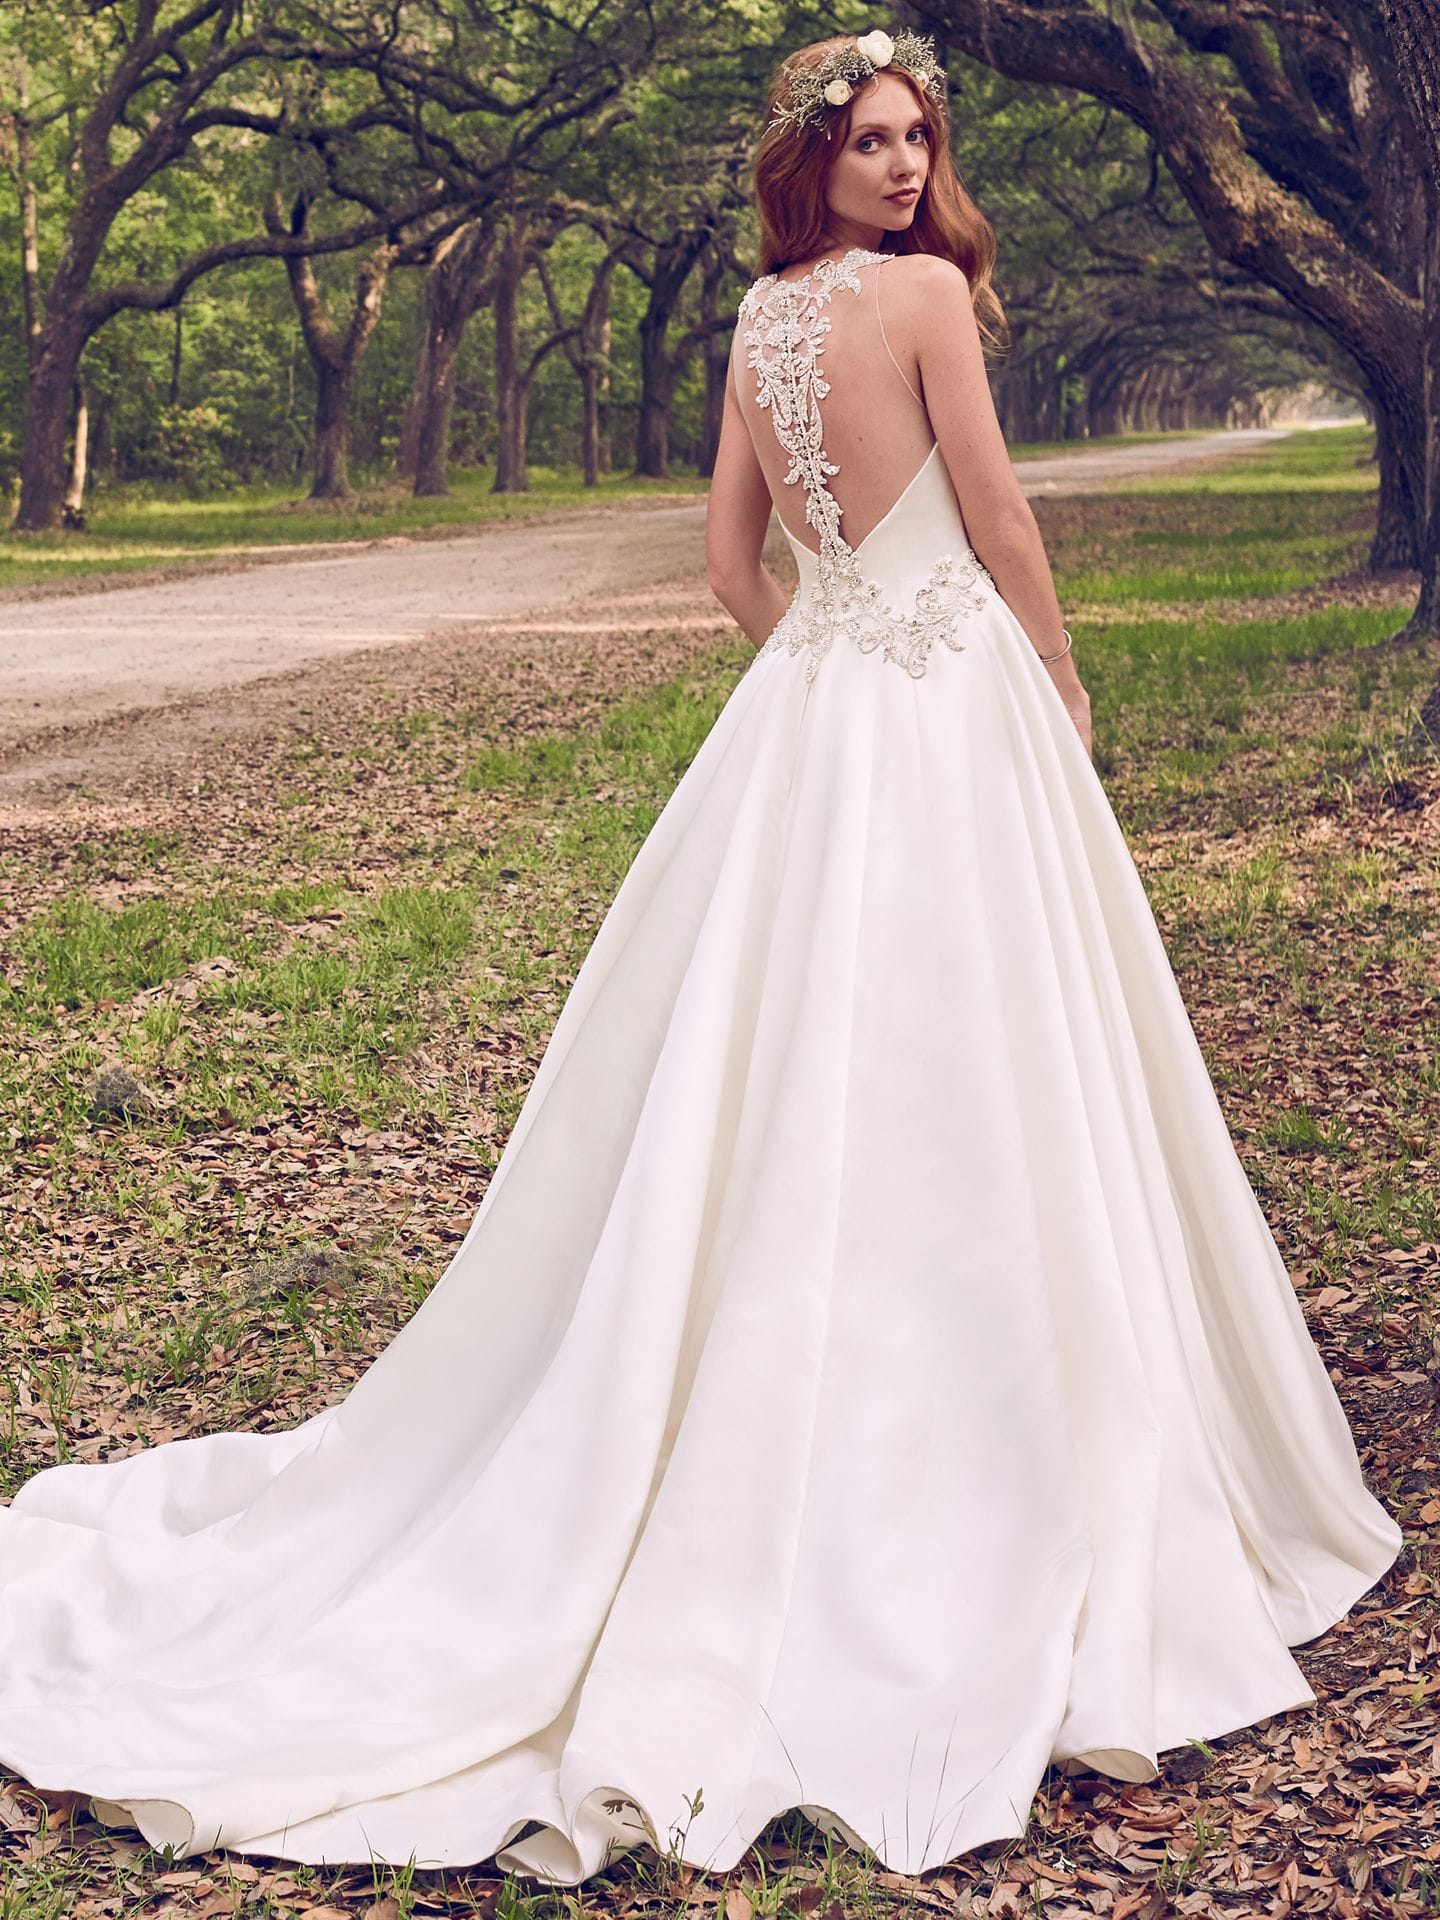 Beautiful statement-back wedding dresses from Maggie Sottero and Sottero and Midgley - Beaded lace motifs and Swarovski crystals adorn the waistline and illusion open back in this Gala Satin wedding dress. Corianne by Maggie Sotter.